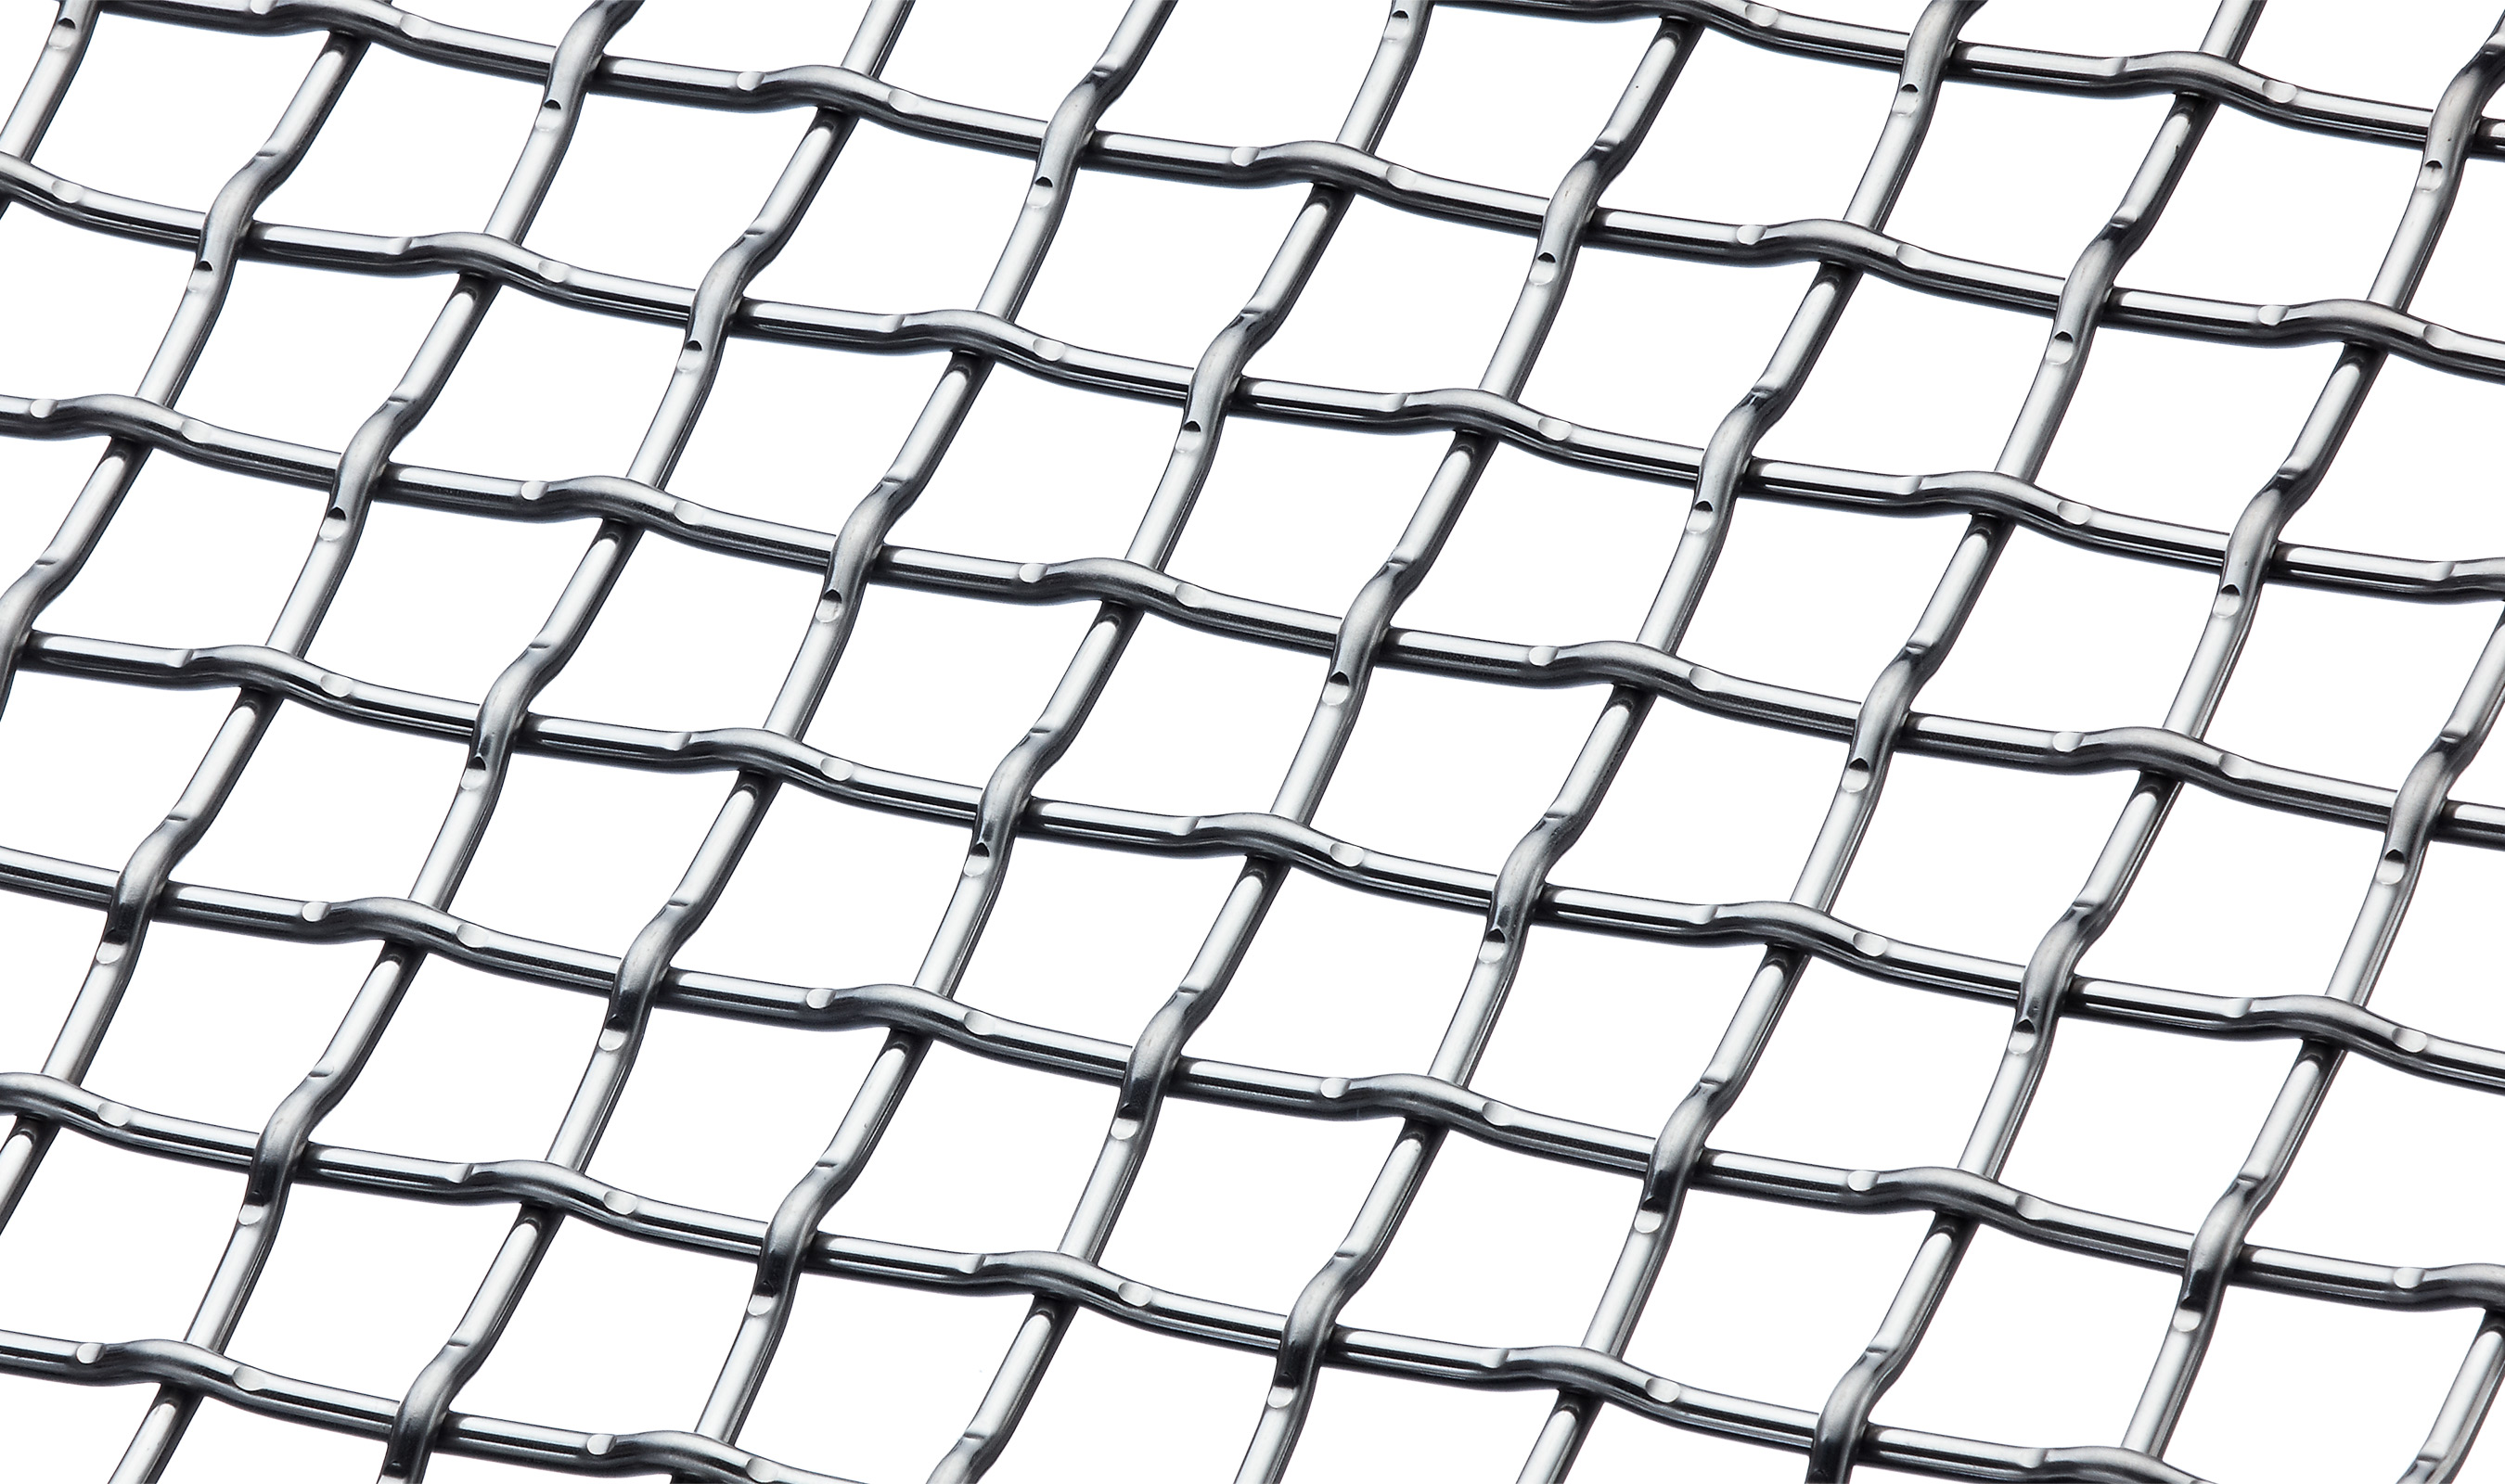 F-48 wire mesh pattern showing the backside